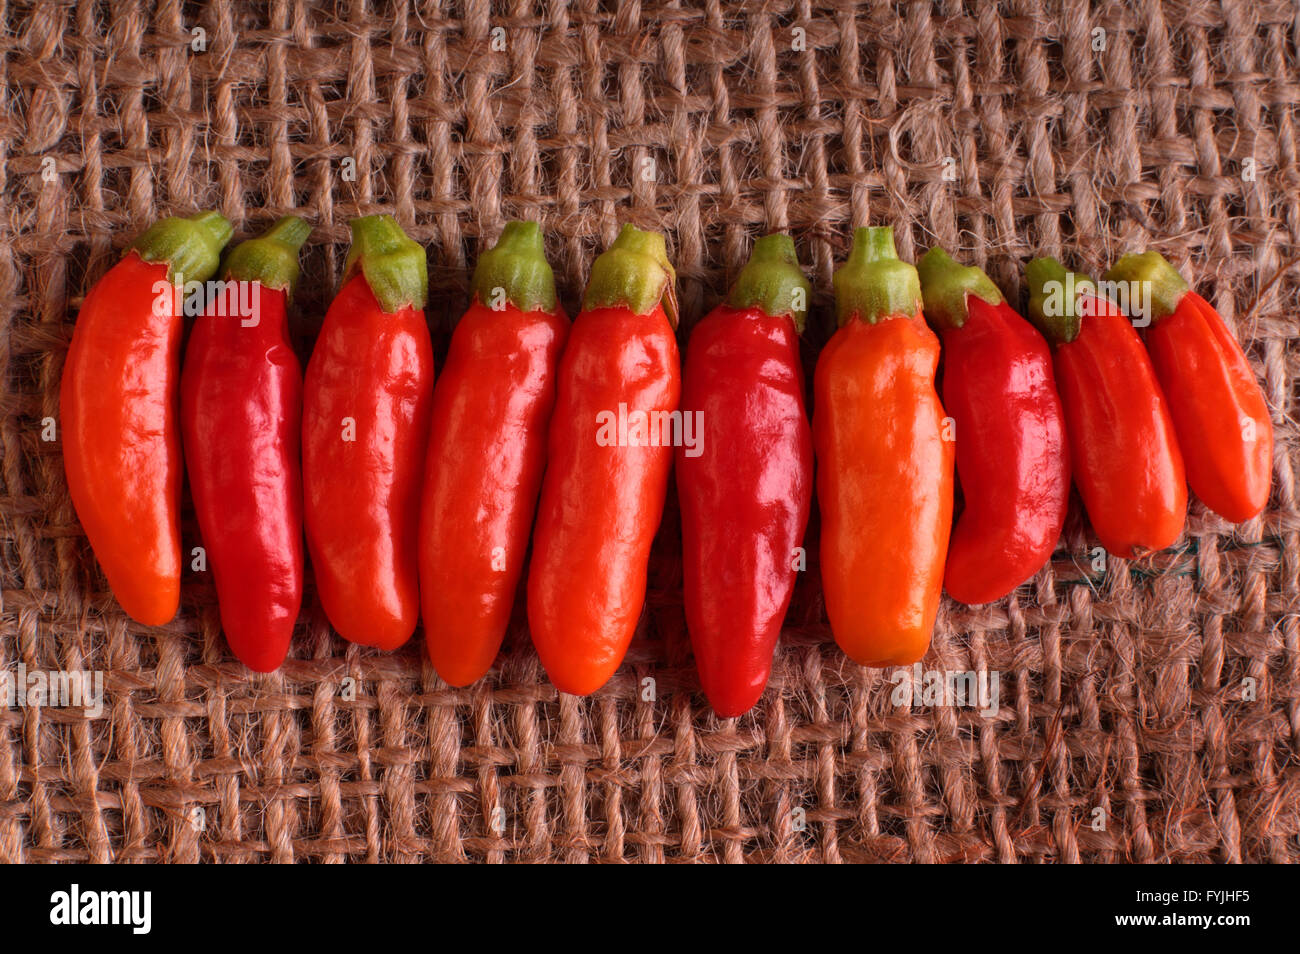 Line of red Peri Peri chili peppers on a Hessian background. - Stock Image